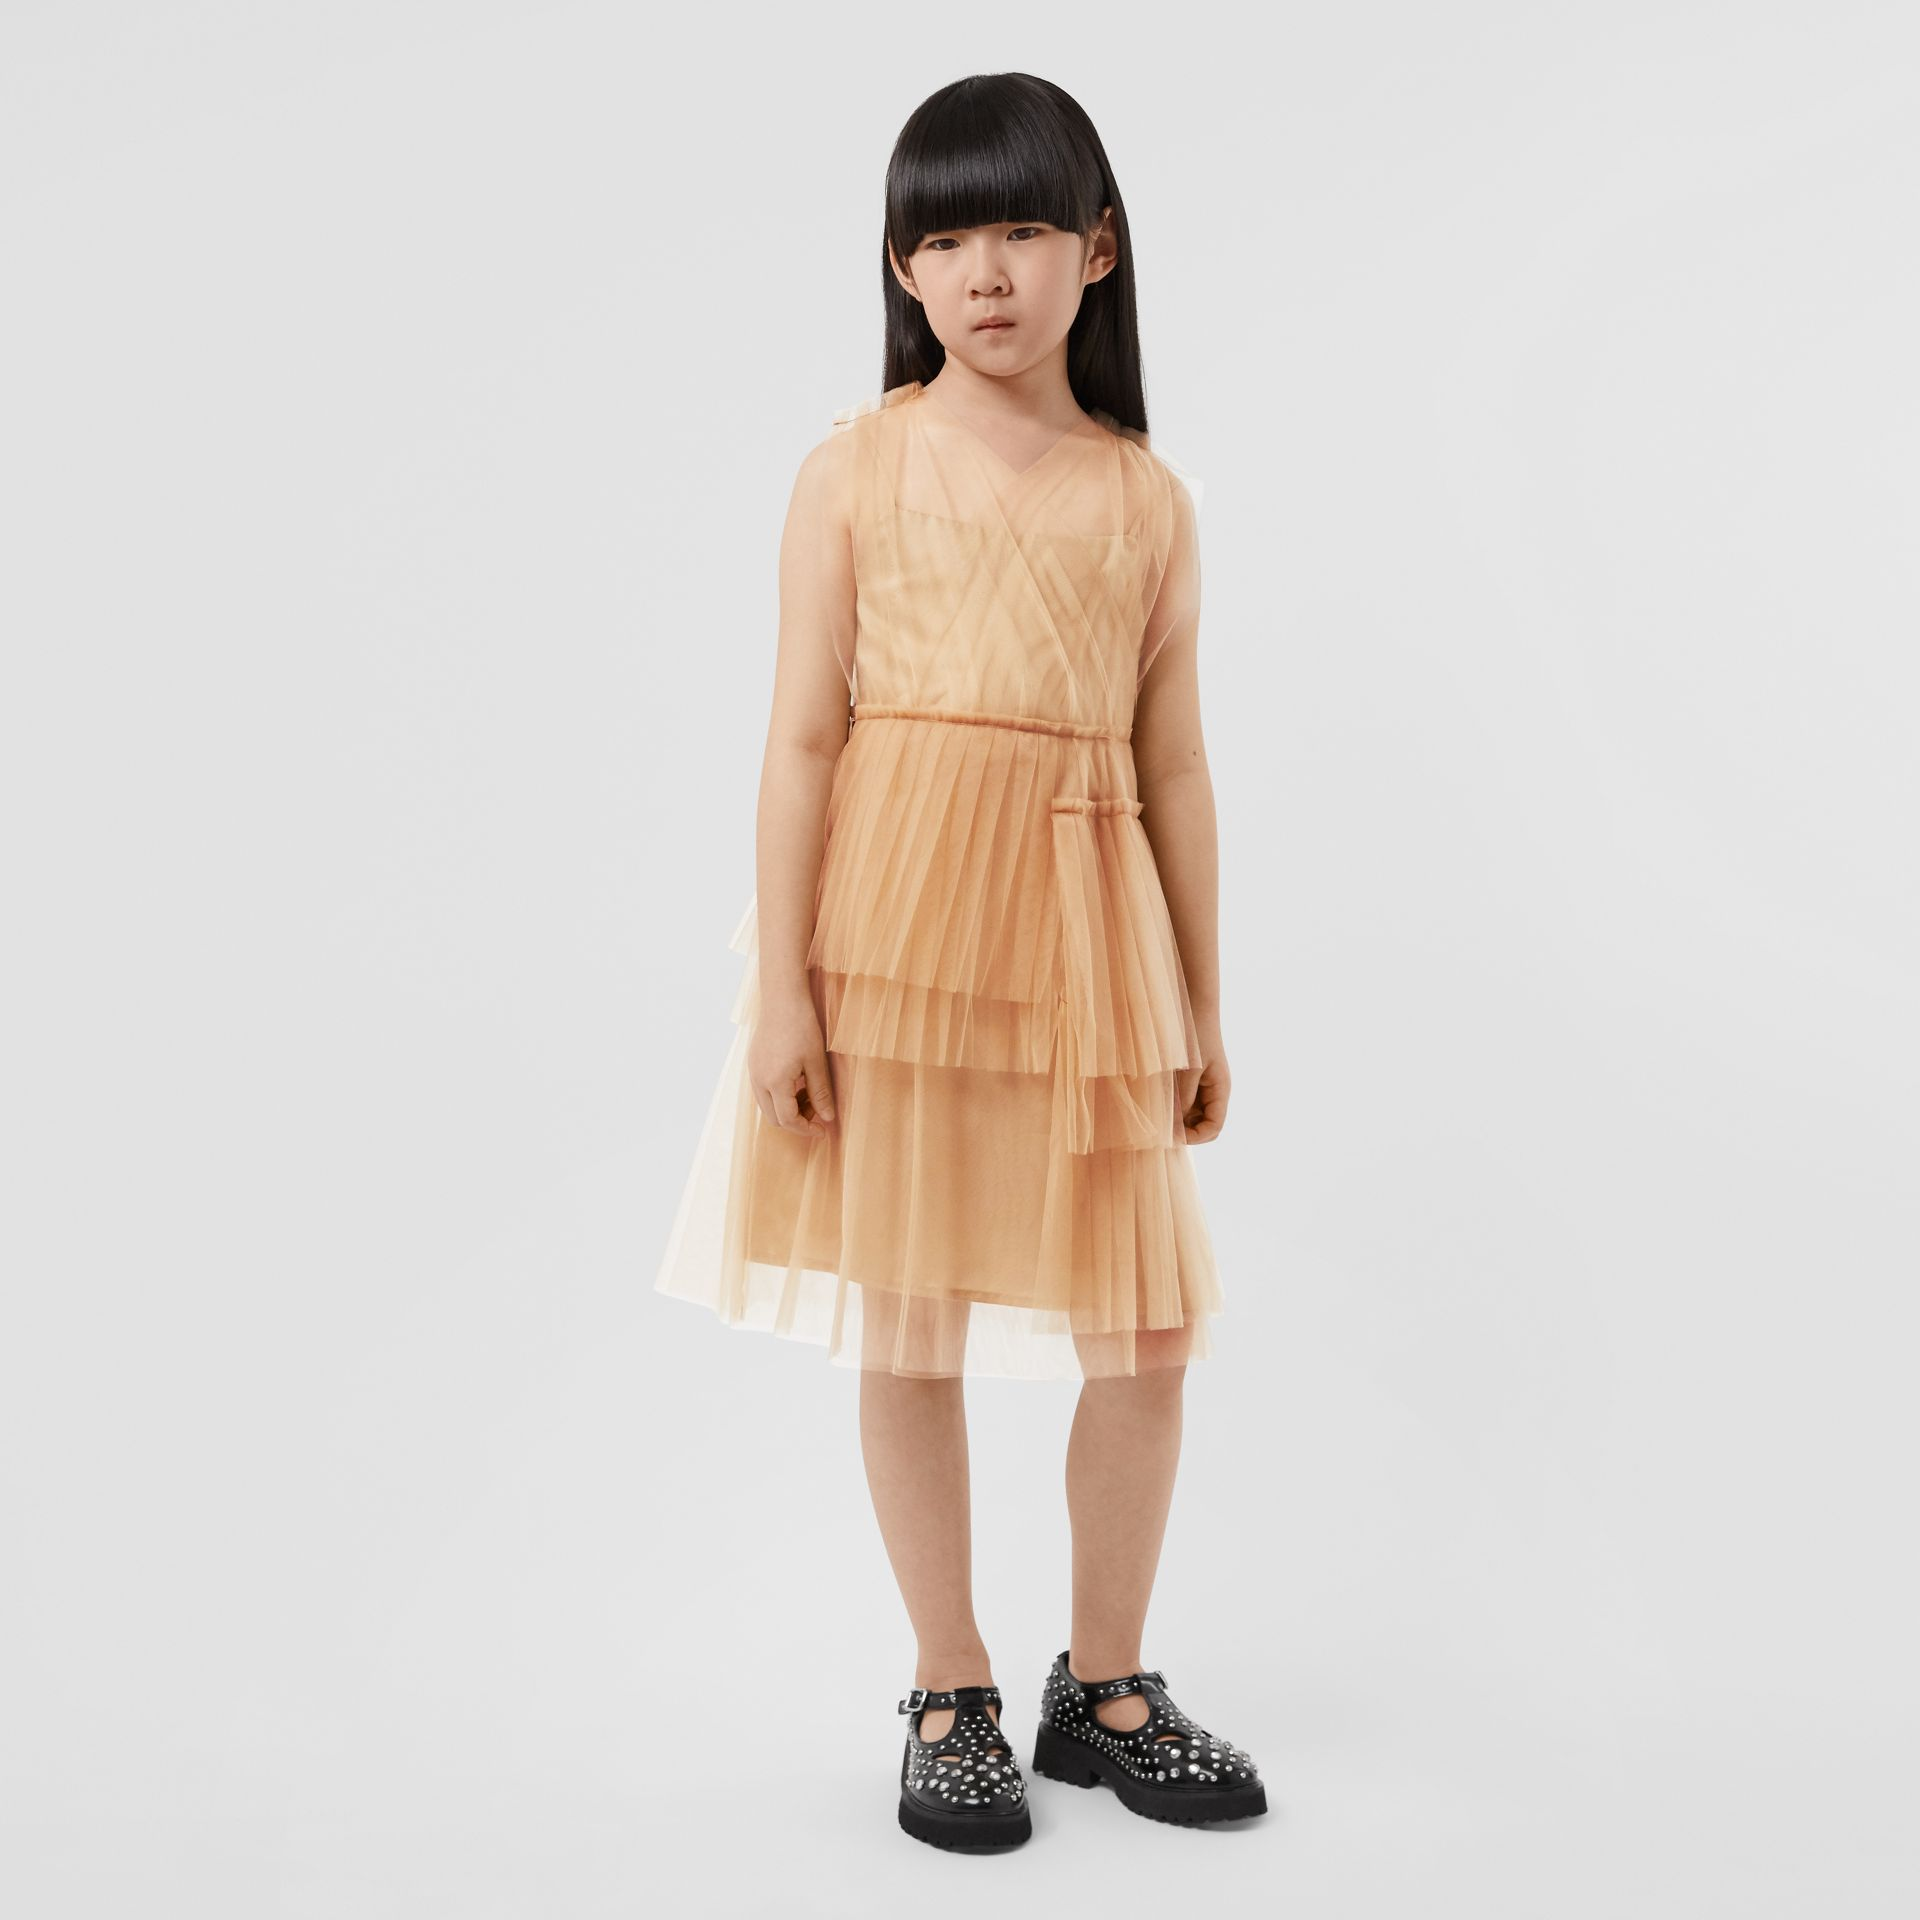 Tulle Tiered Dress in Oyster Beige | Burberry - gallery image 2